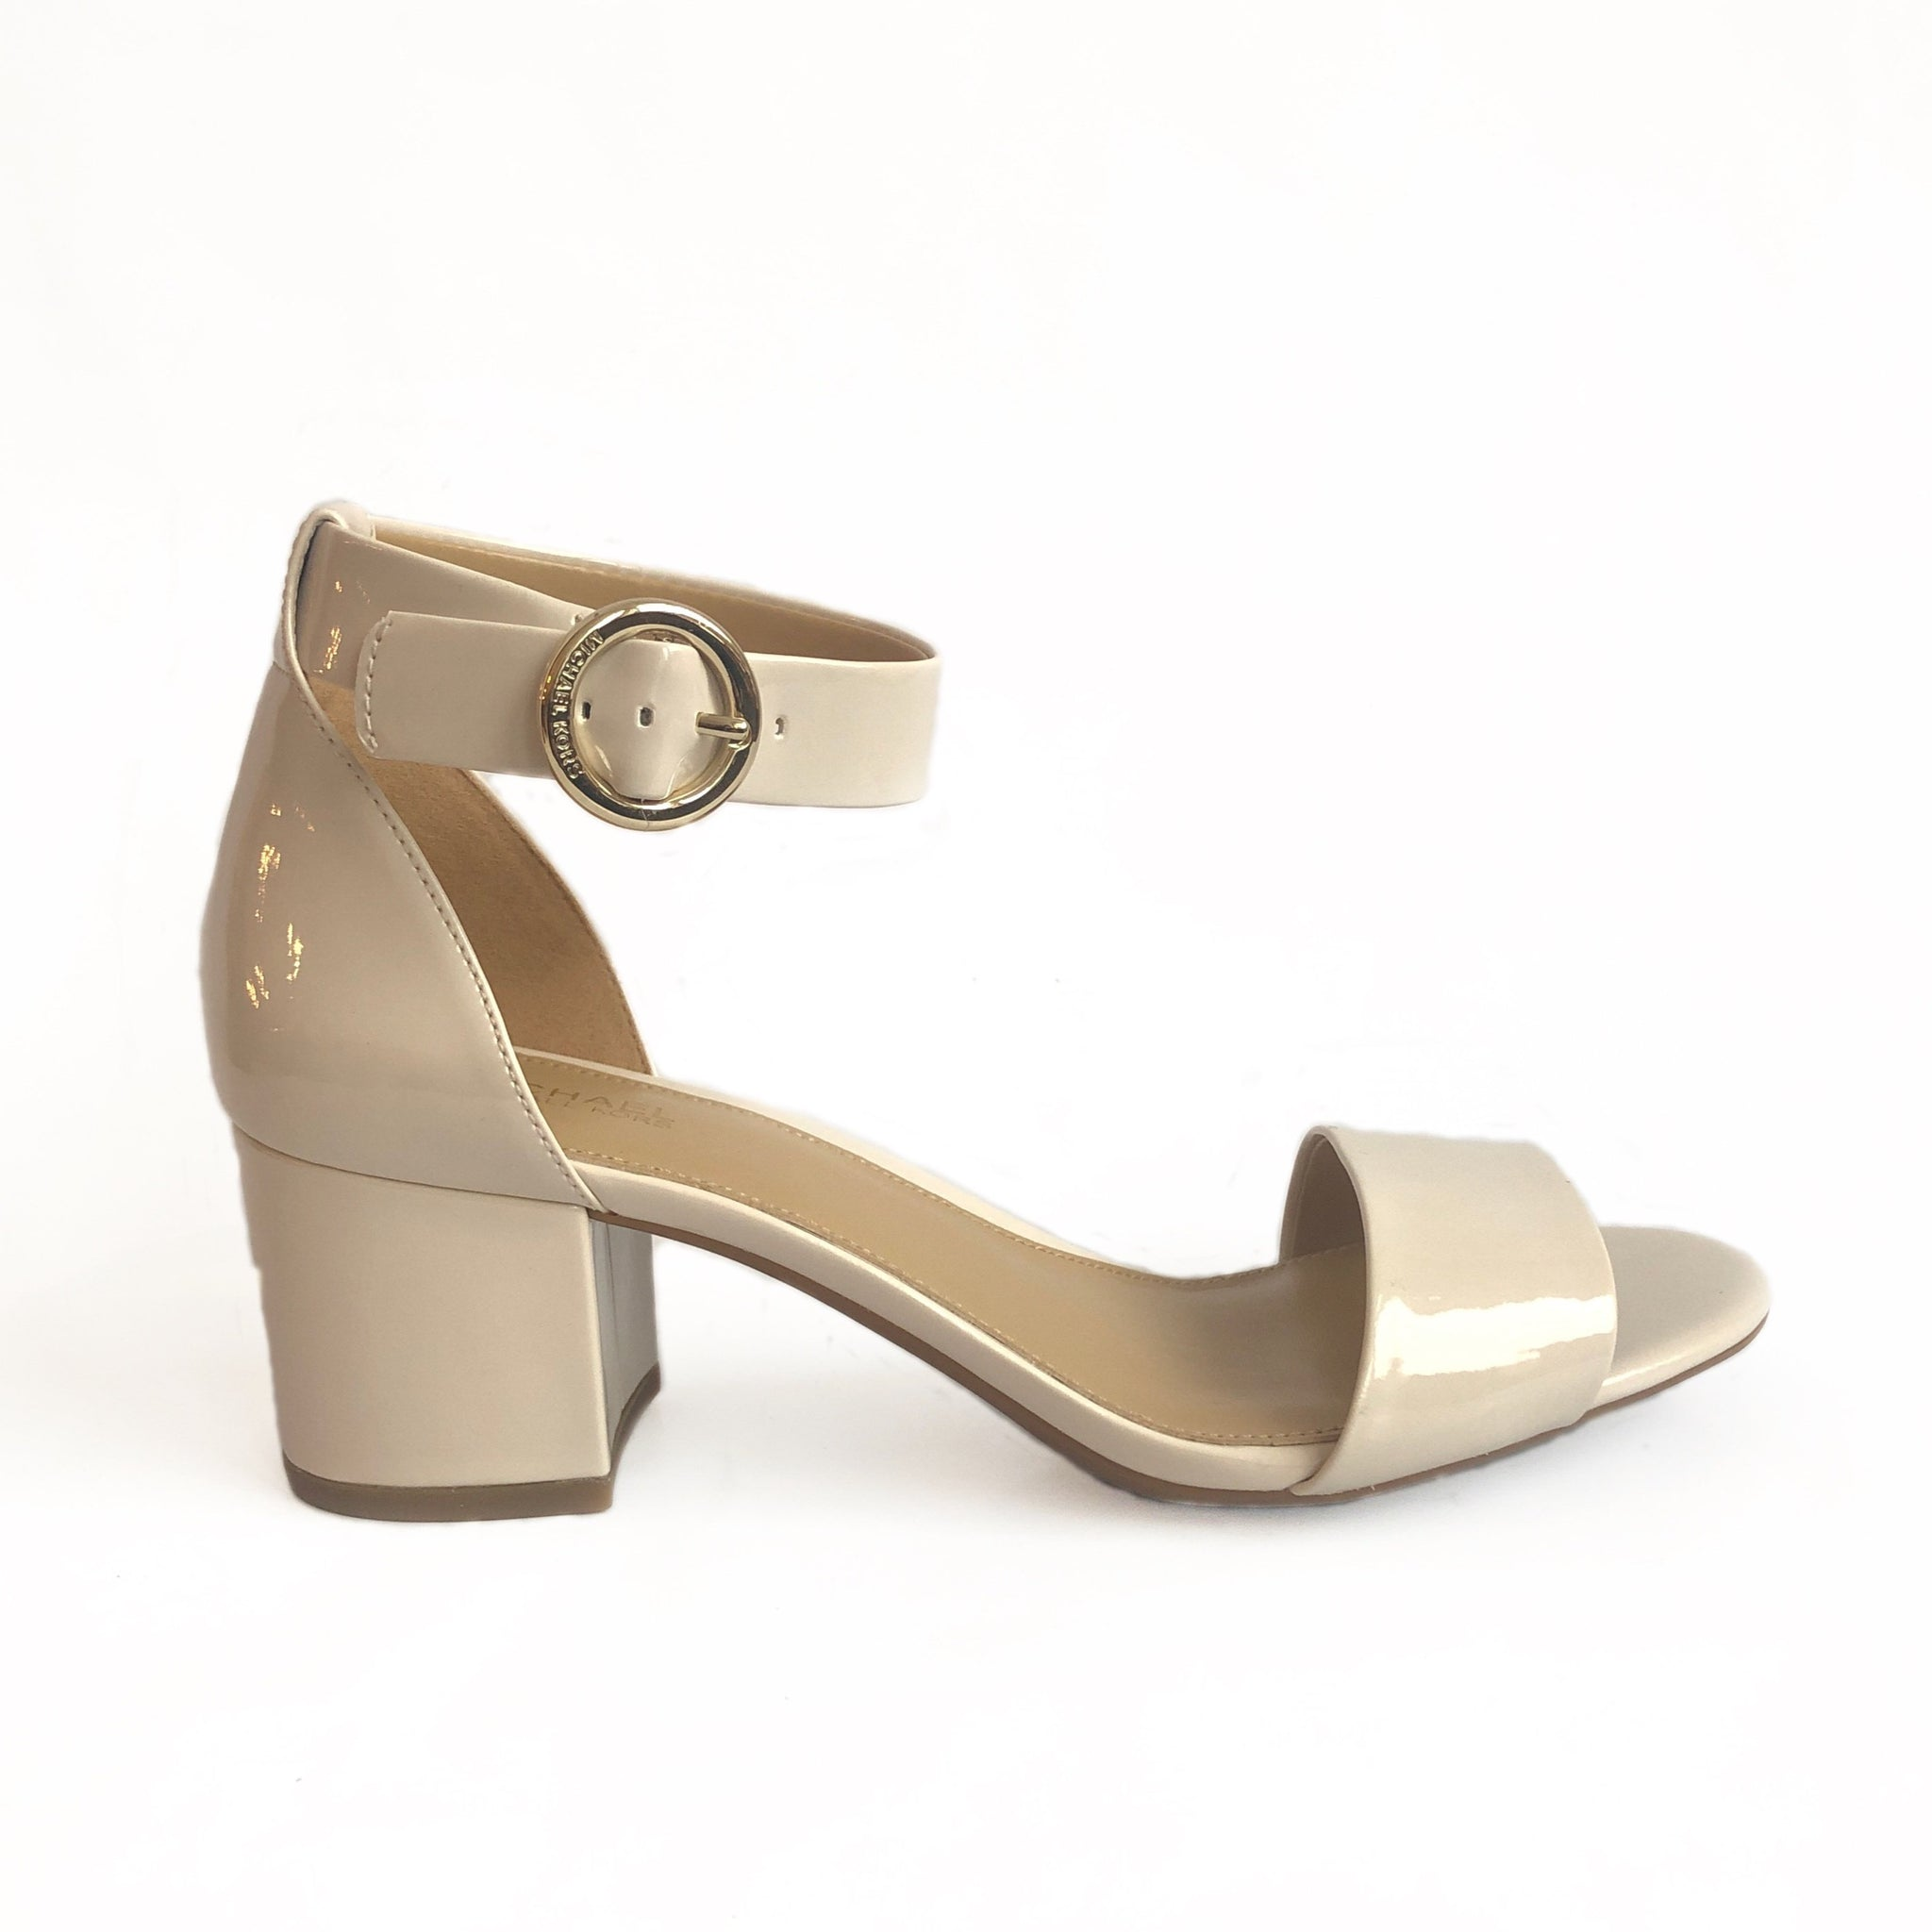 MICHAEL KORS - LENA FLEX MID IN LIGHT CREAM